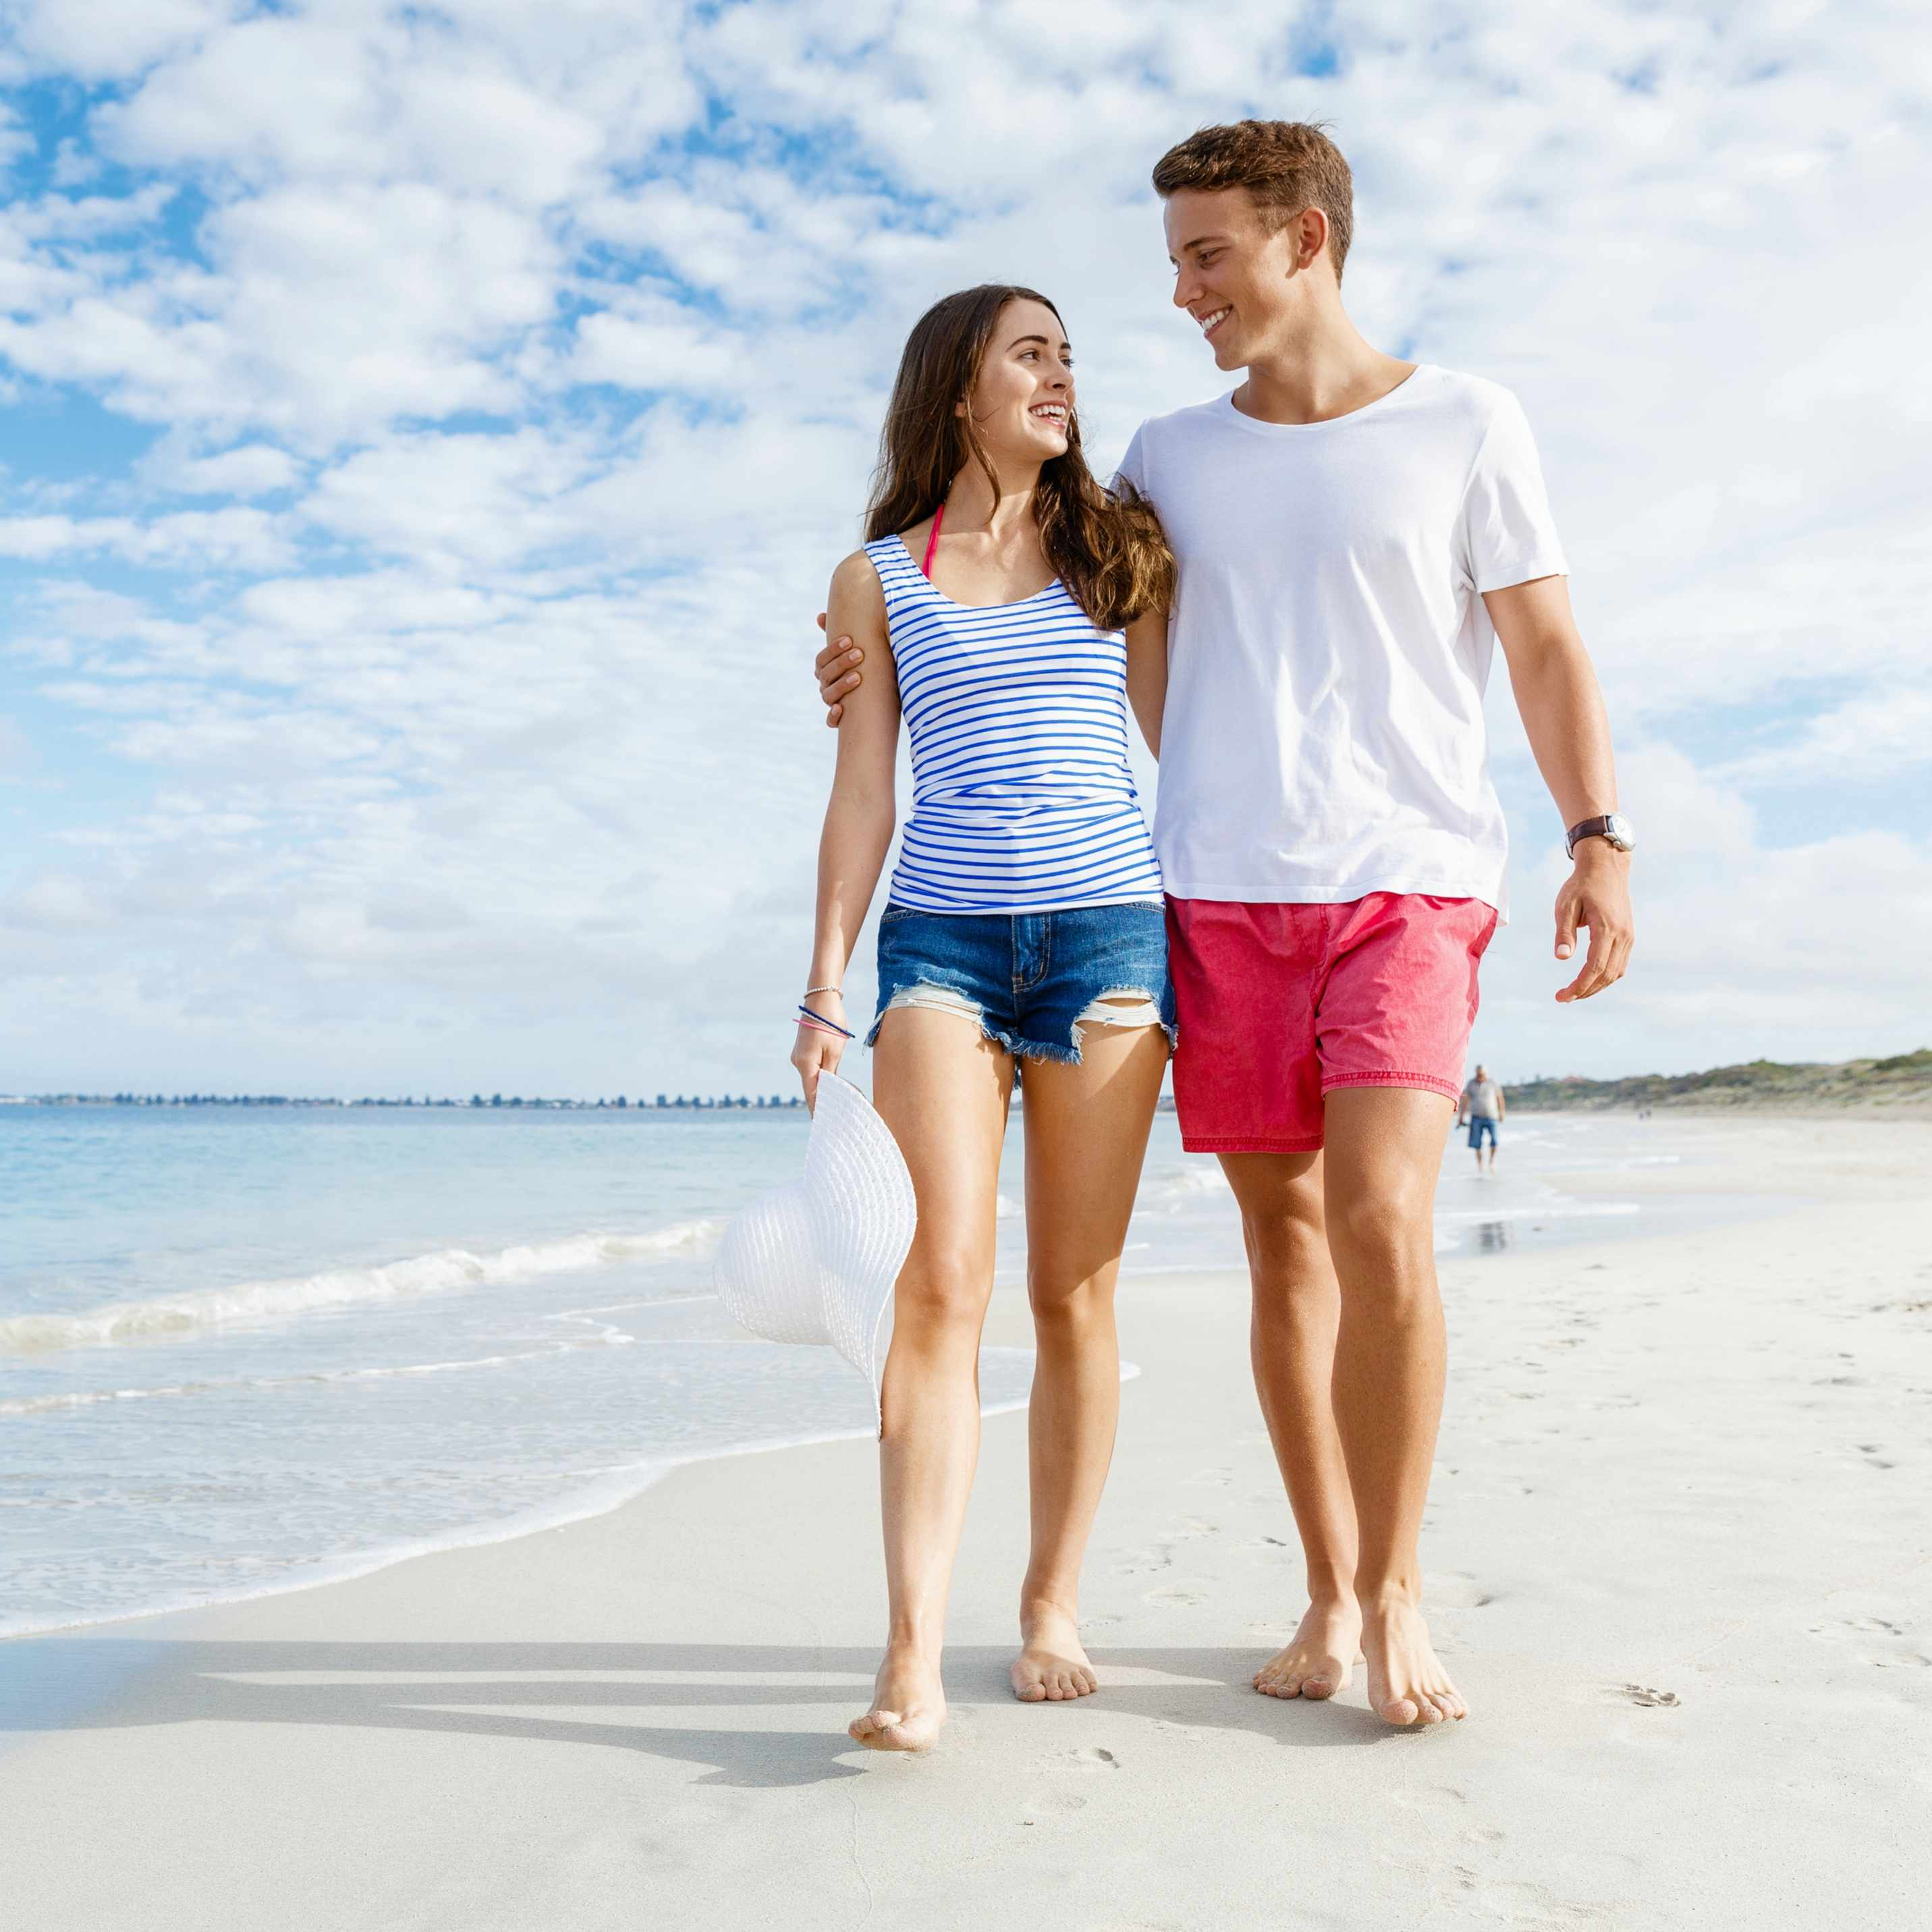 a young couple walking along the beach with blue sky in the background